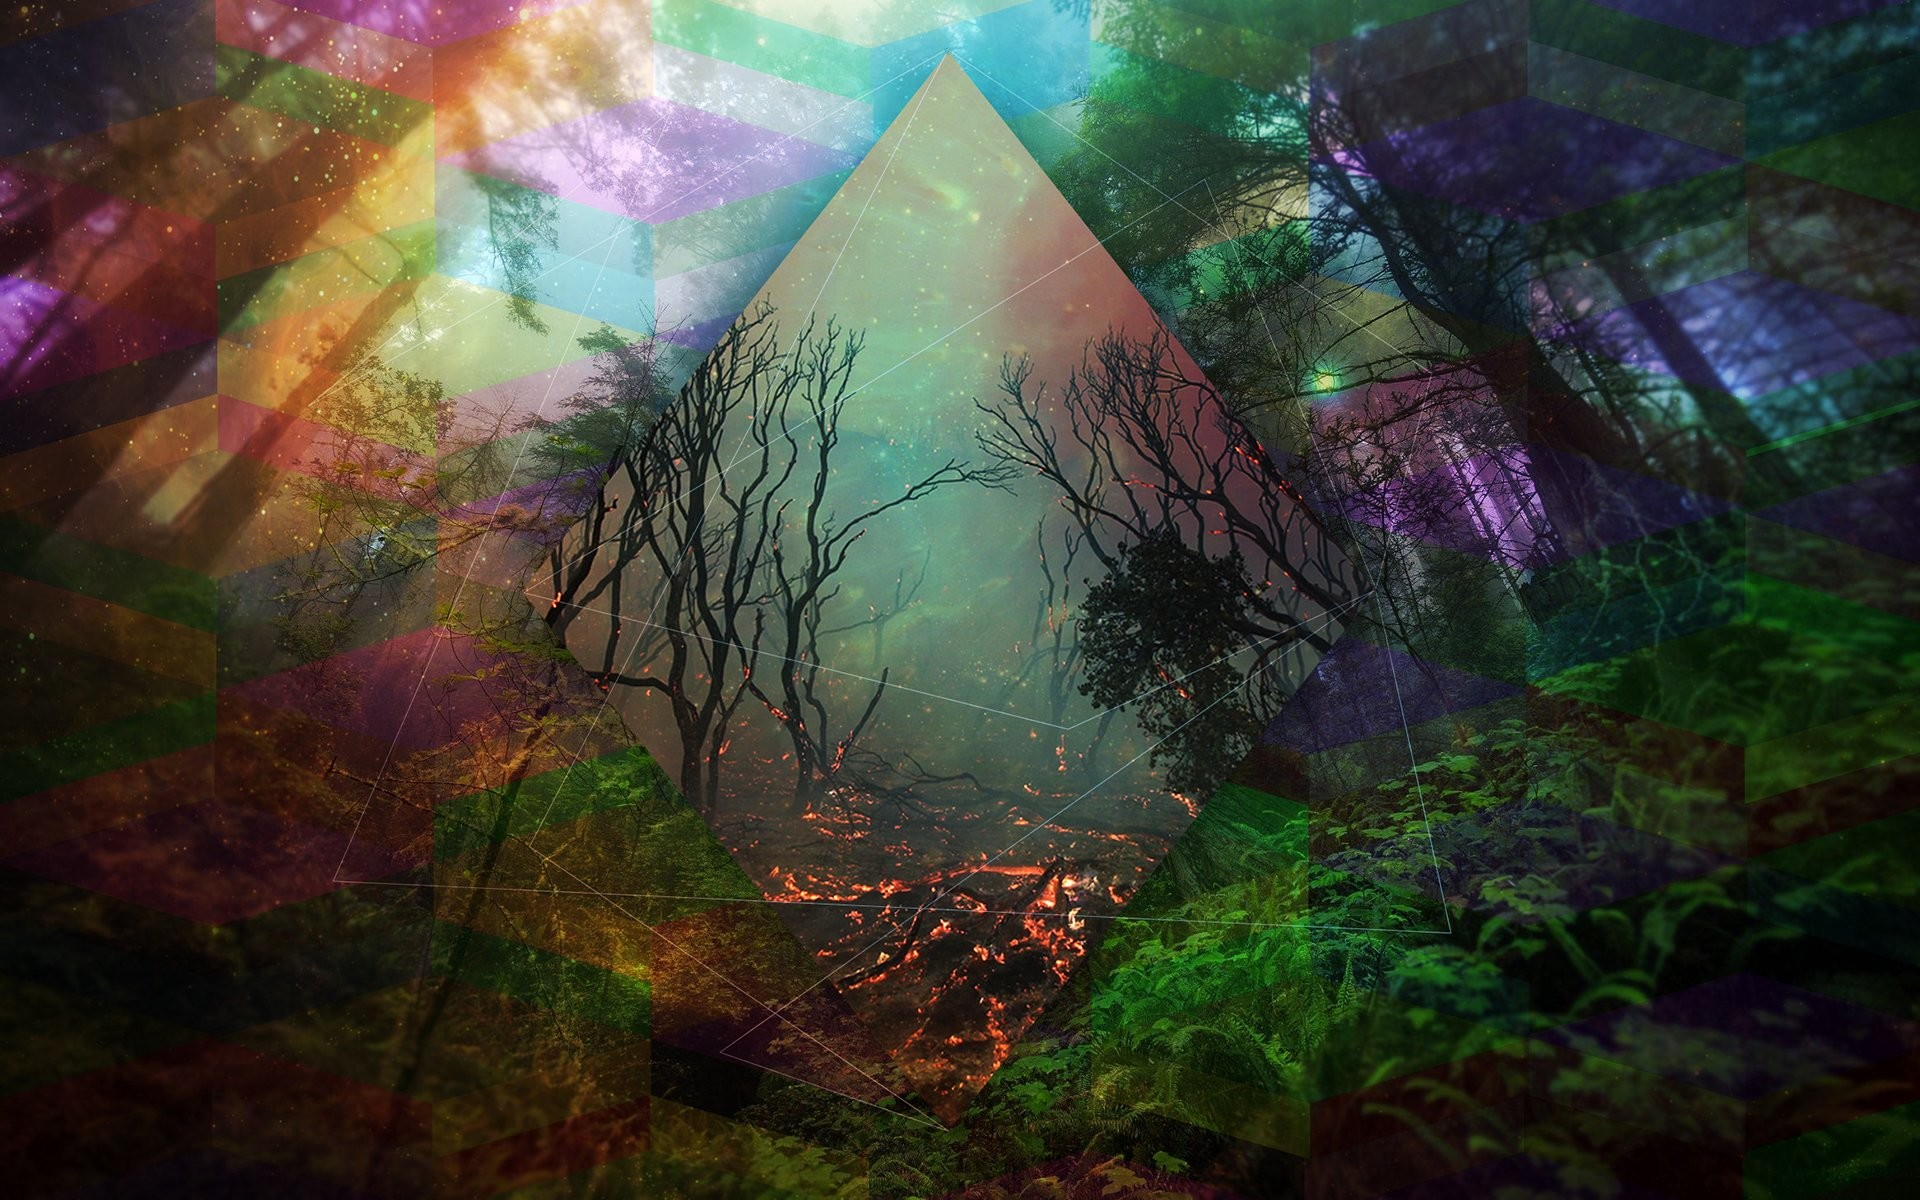 Trippy wolf wallpapers 66 images - Trippy nature wallpaper ...